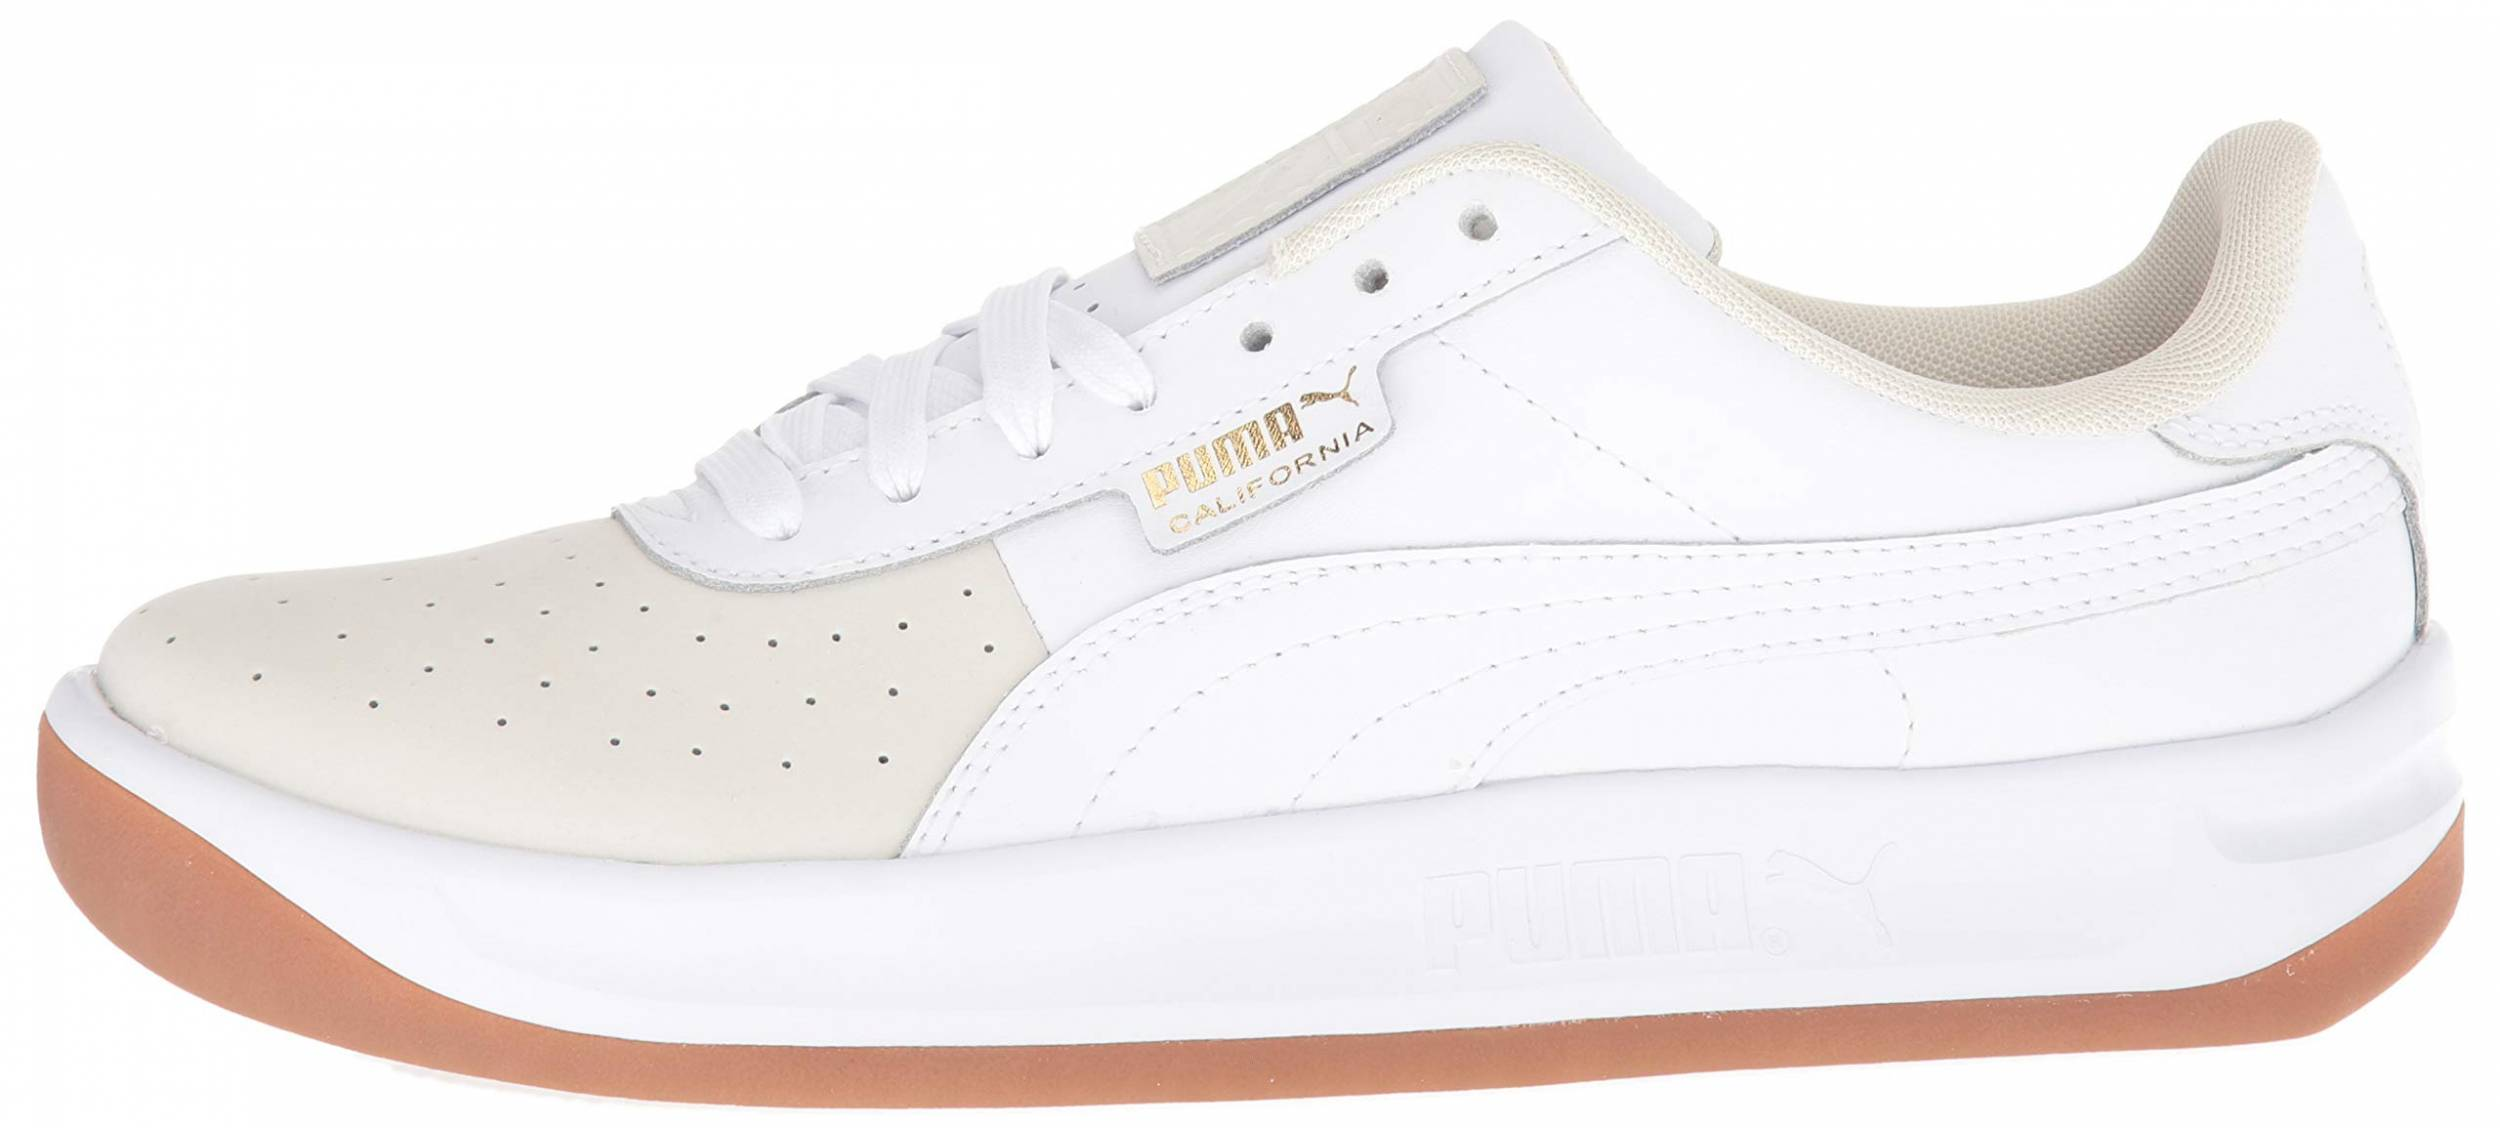 Puma California Exotic sneakers in white (only $30)   RunRepeat